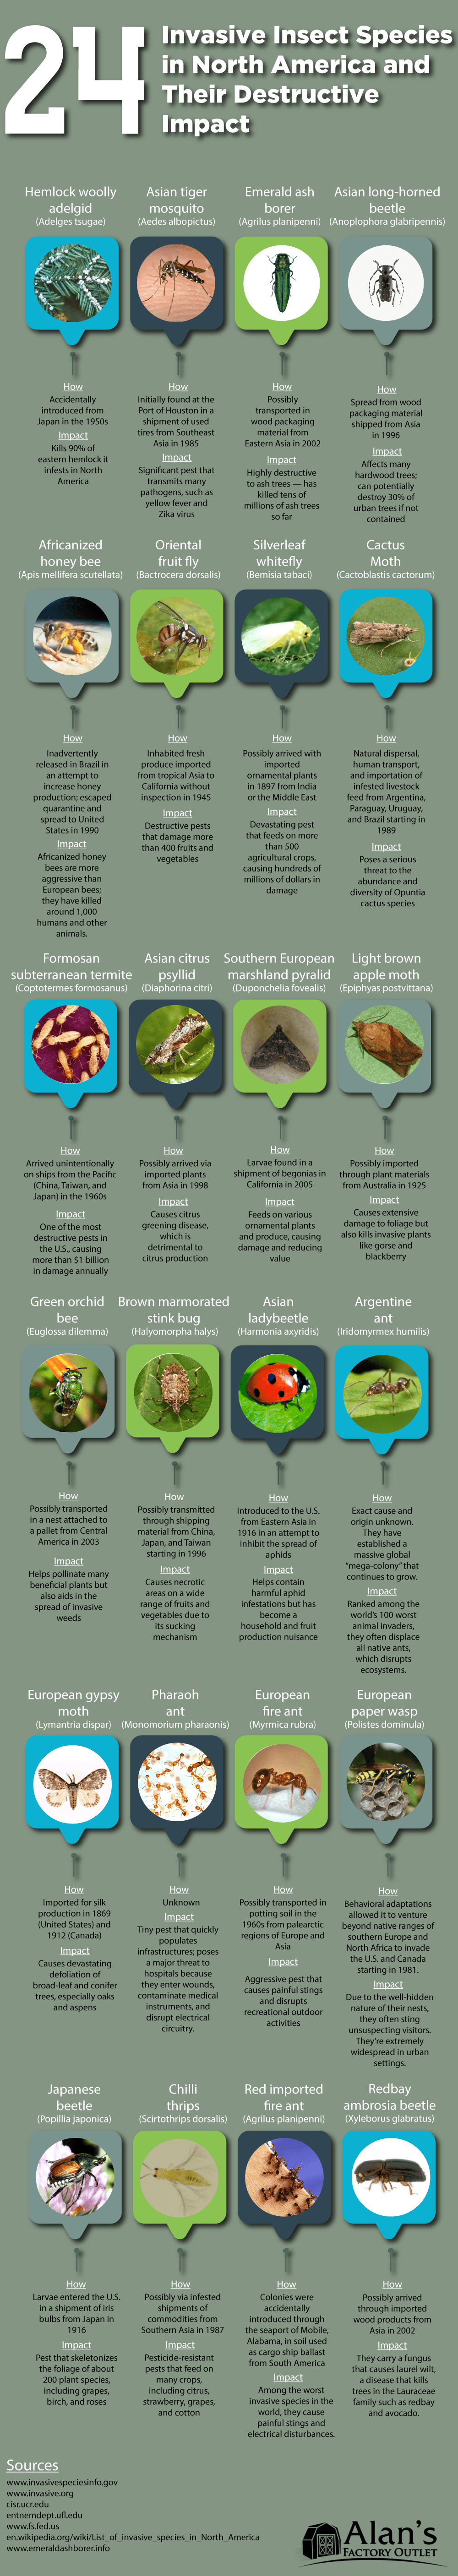 Insect Species in North America that are Invasive - Infographic